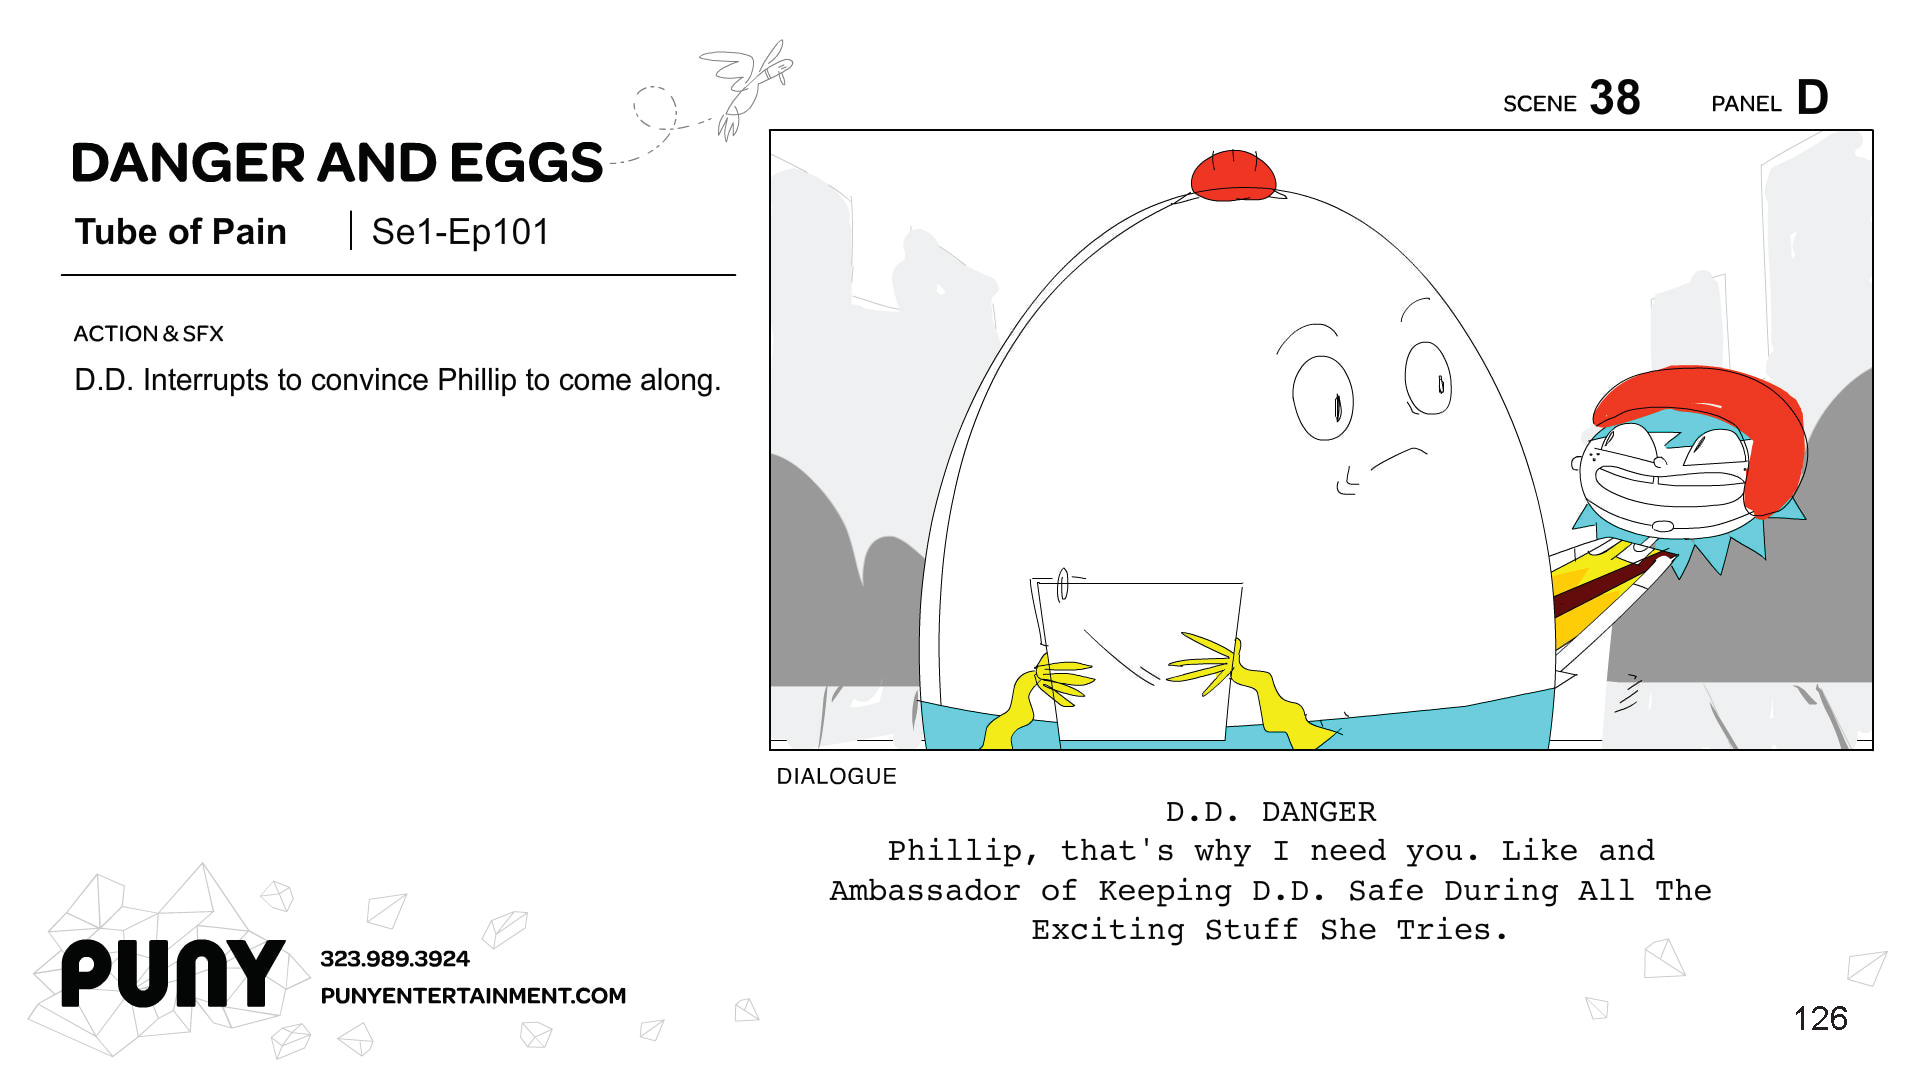 MikeOwens_STORYBOARDS_DangerAndEggs_Page_126.png